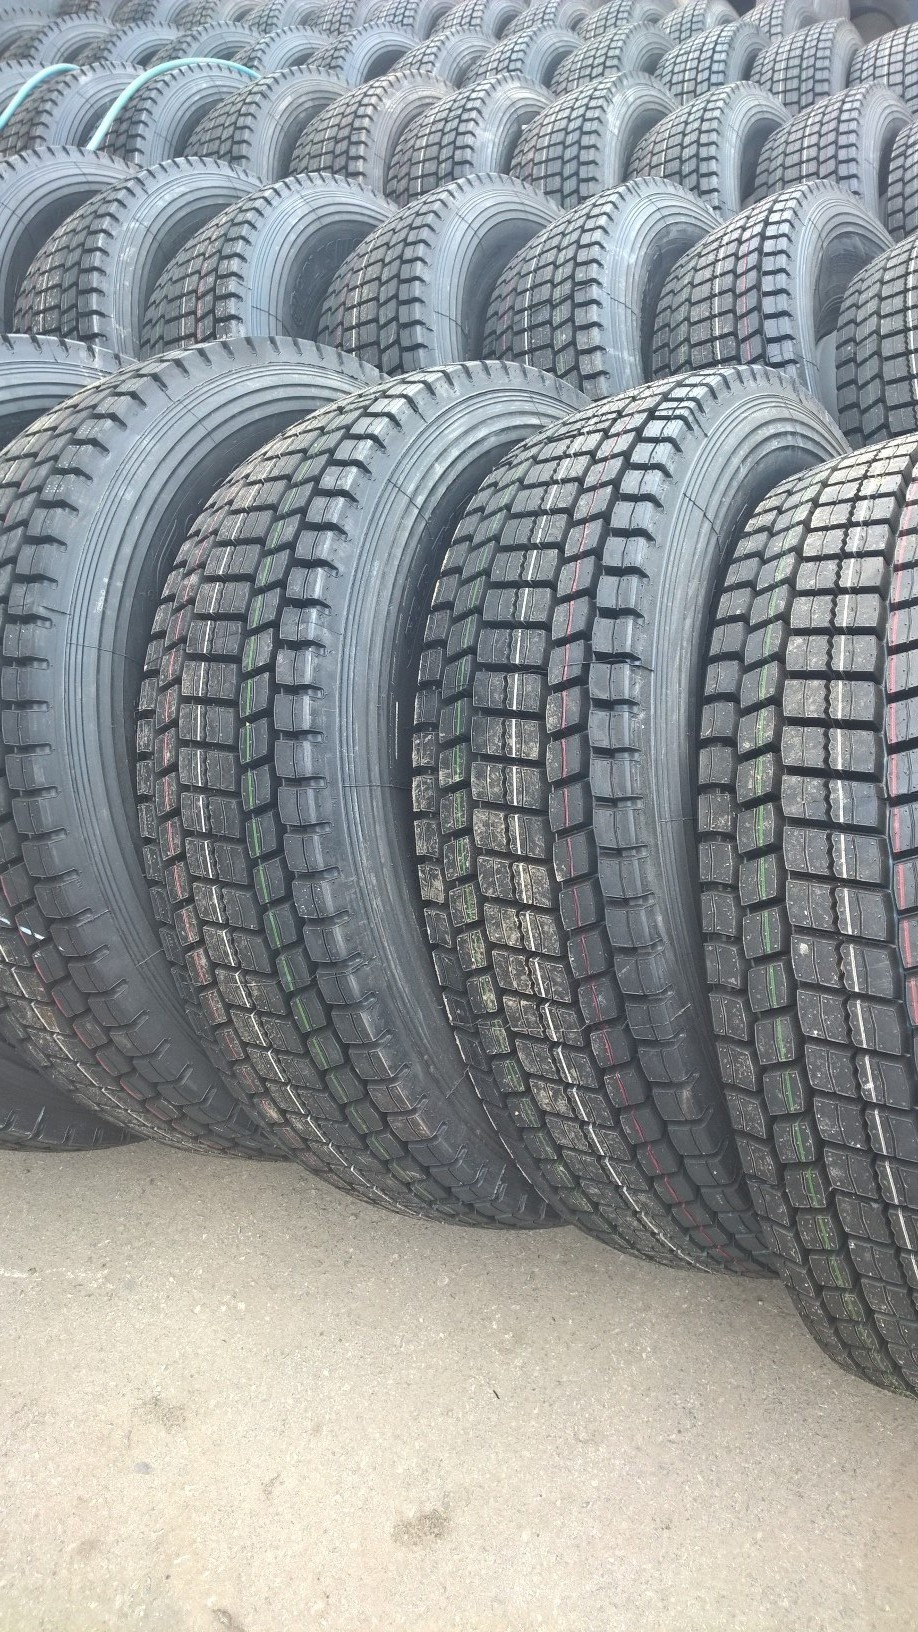 Грузовая шинаGOLDSHIELD HD717 315/80R22.5 20PR 156/152К (вед)